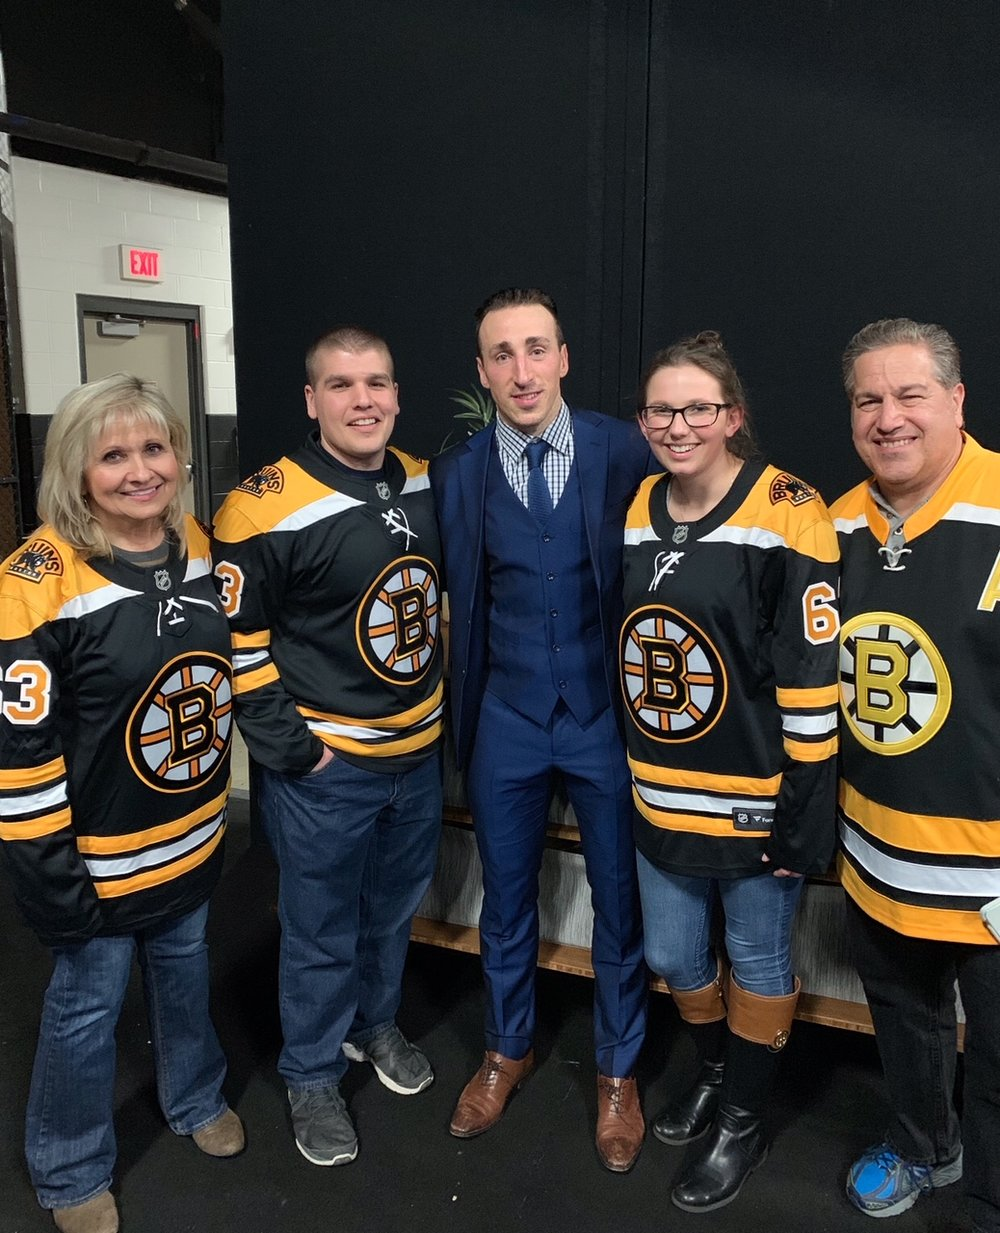 We had the pleasure of customizing a private meet and greet for our VIP client with  Brad Marchand  post-game back in March 2019